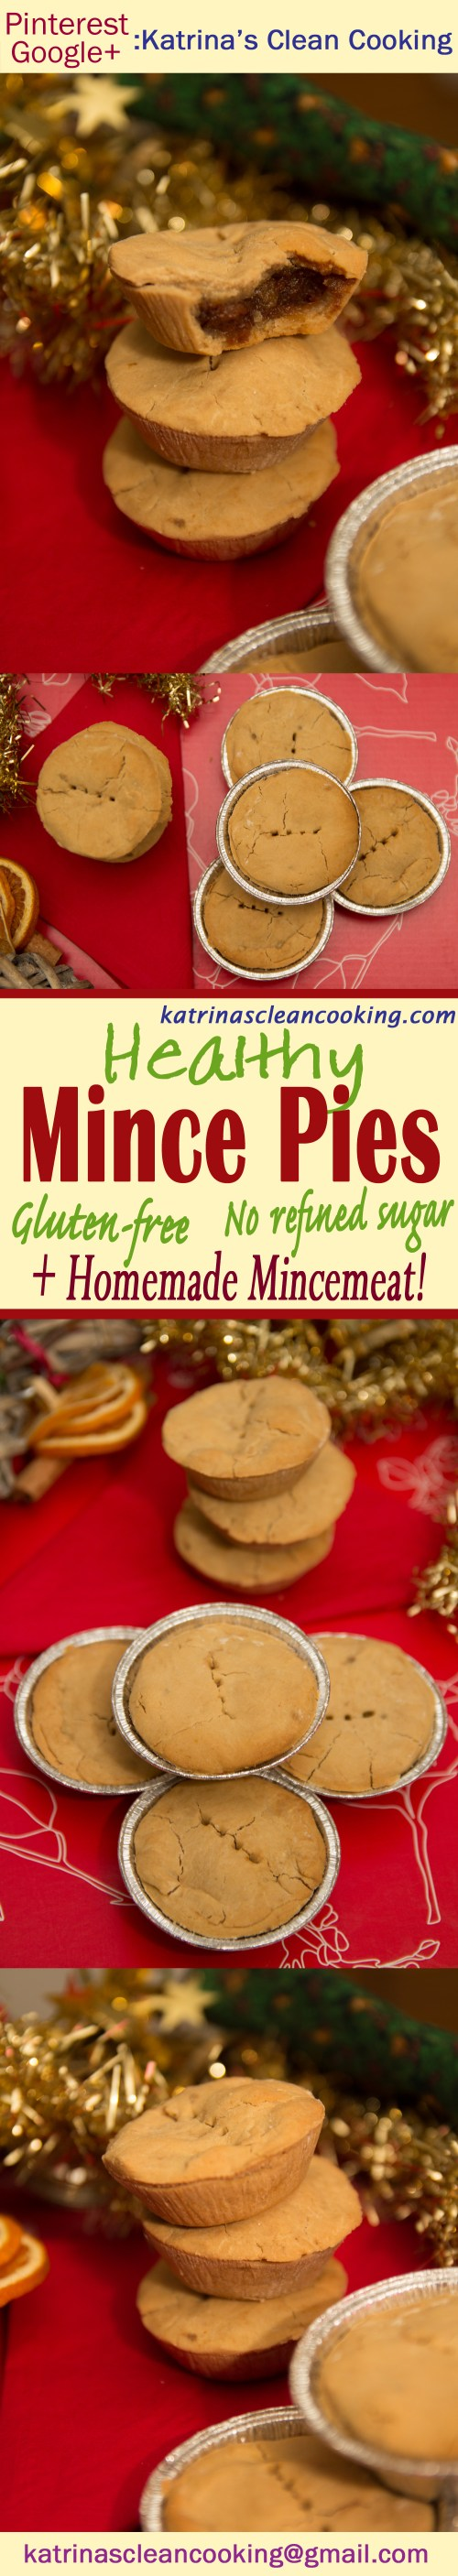 Healthy Mince Pies - Gluten free & vegan #healthy #christmas #vegan #glutenfree #refinedsugarfree